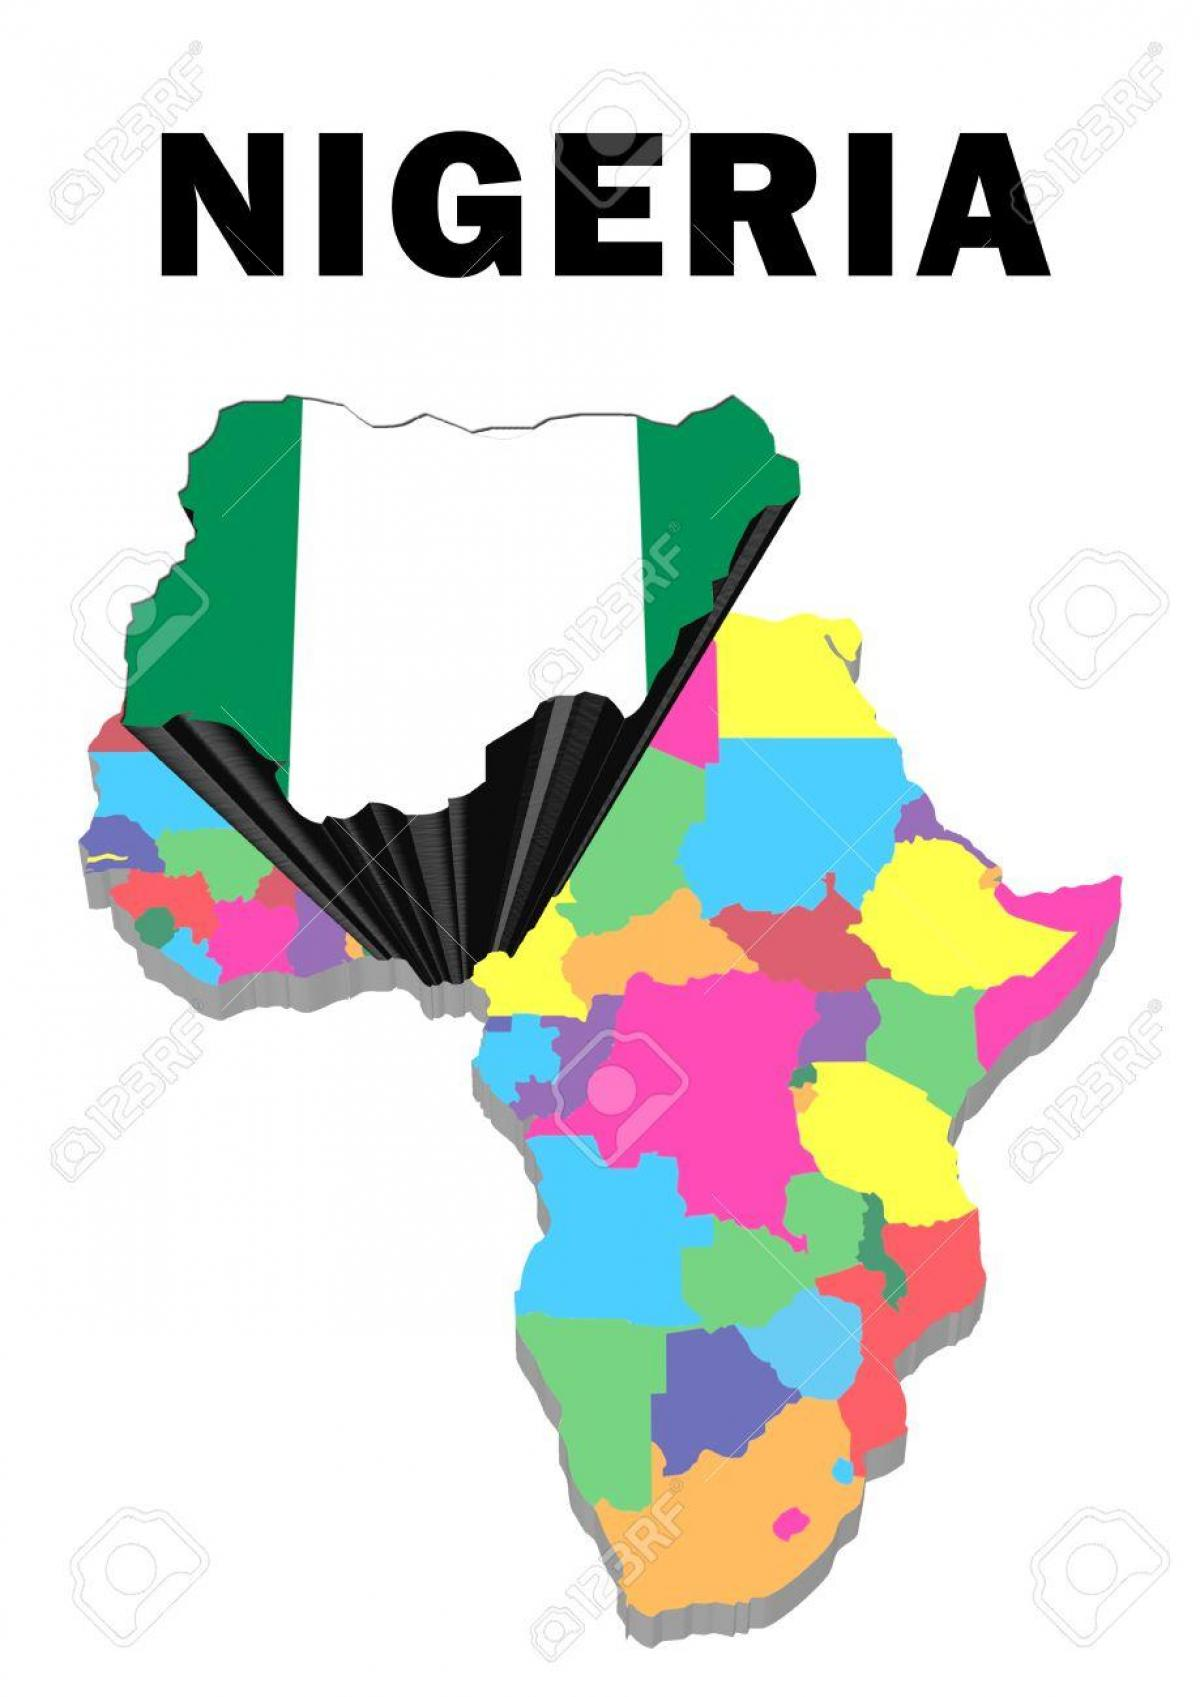 Nigeria map africa - Map of africa with nigeria highlighted (Western ...